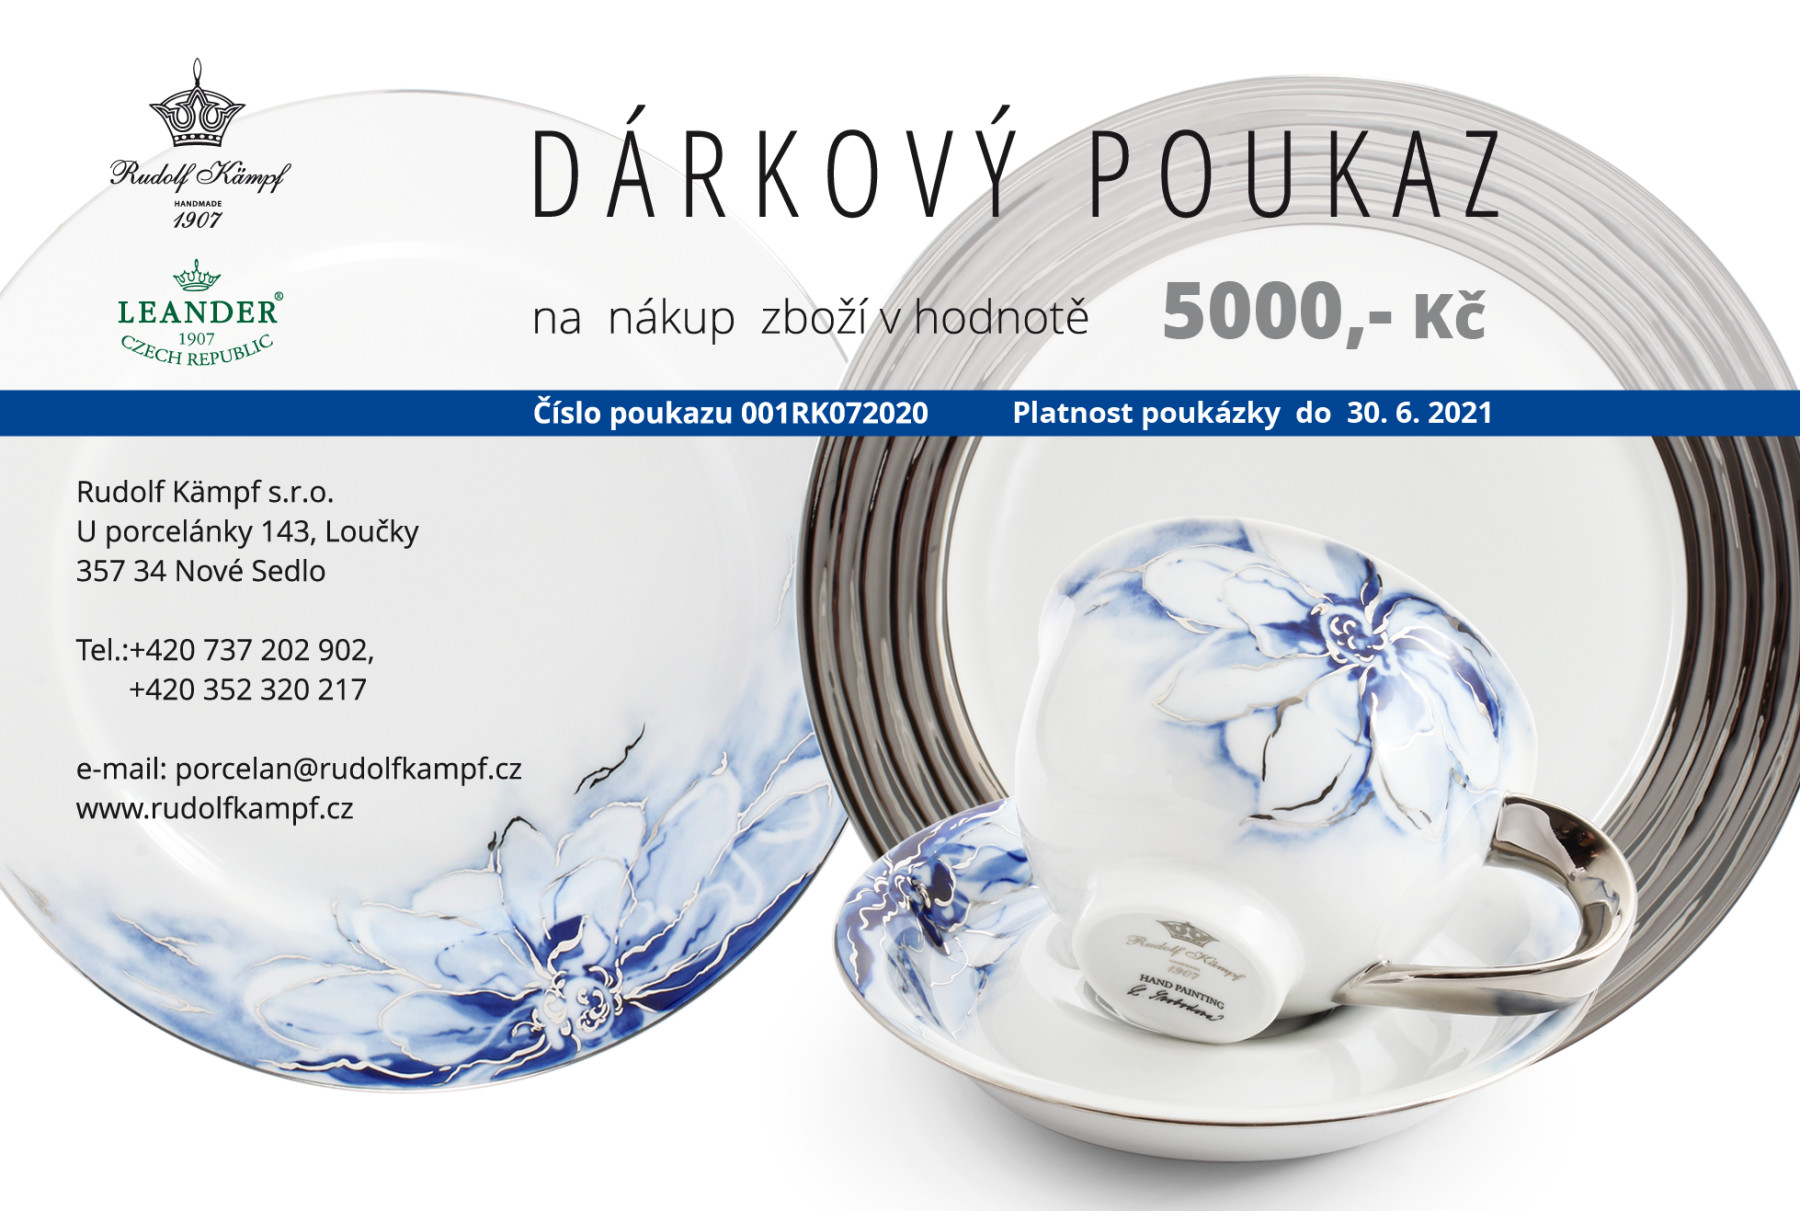 Gift voucher at the amount of CZK 5,000